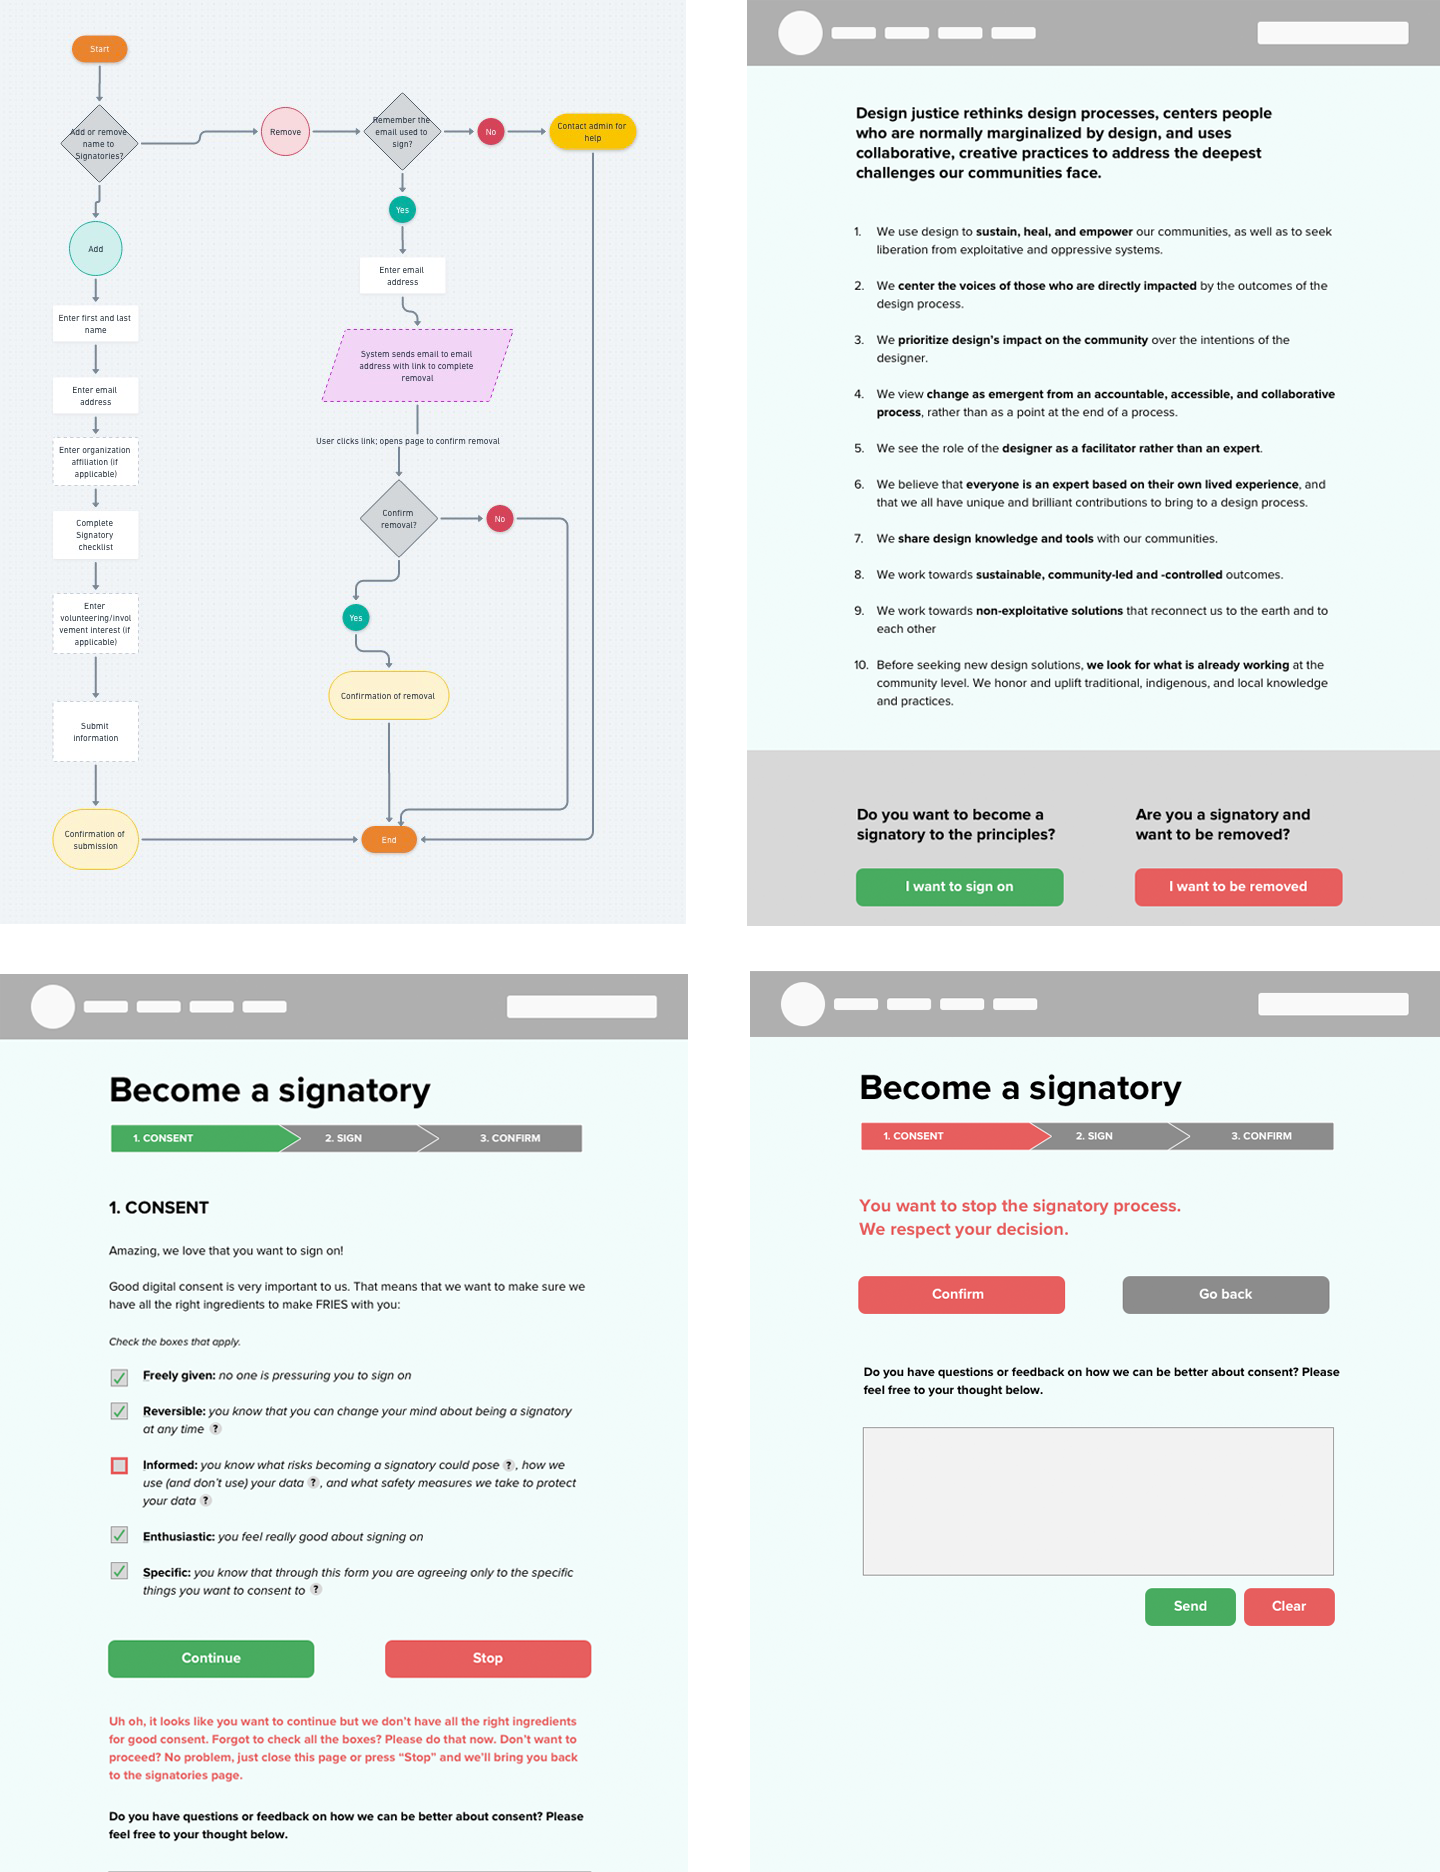 A 2x2 grid of four concept images: the top left is a flowchart depicting the consent UX, the top right, bottom left, and bottom right are wireframe sketches that show how a user can stop and reverse a sign-up process at any given time.